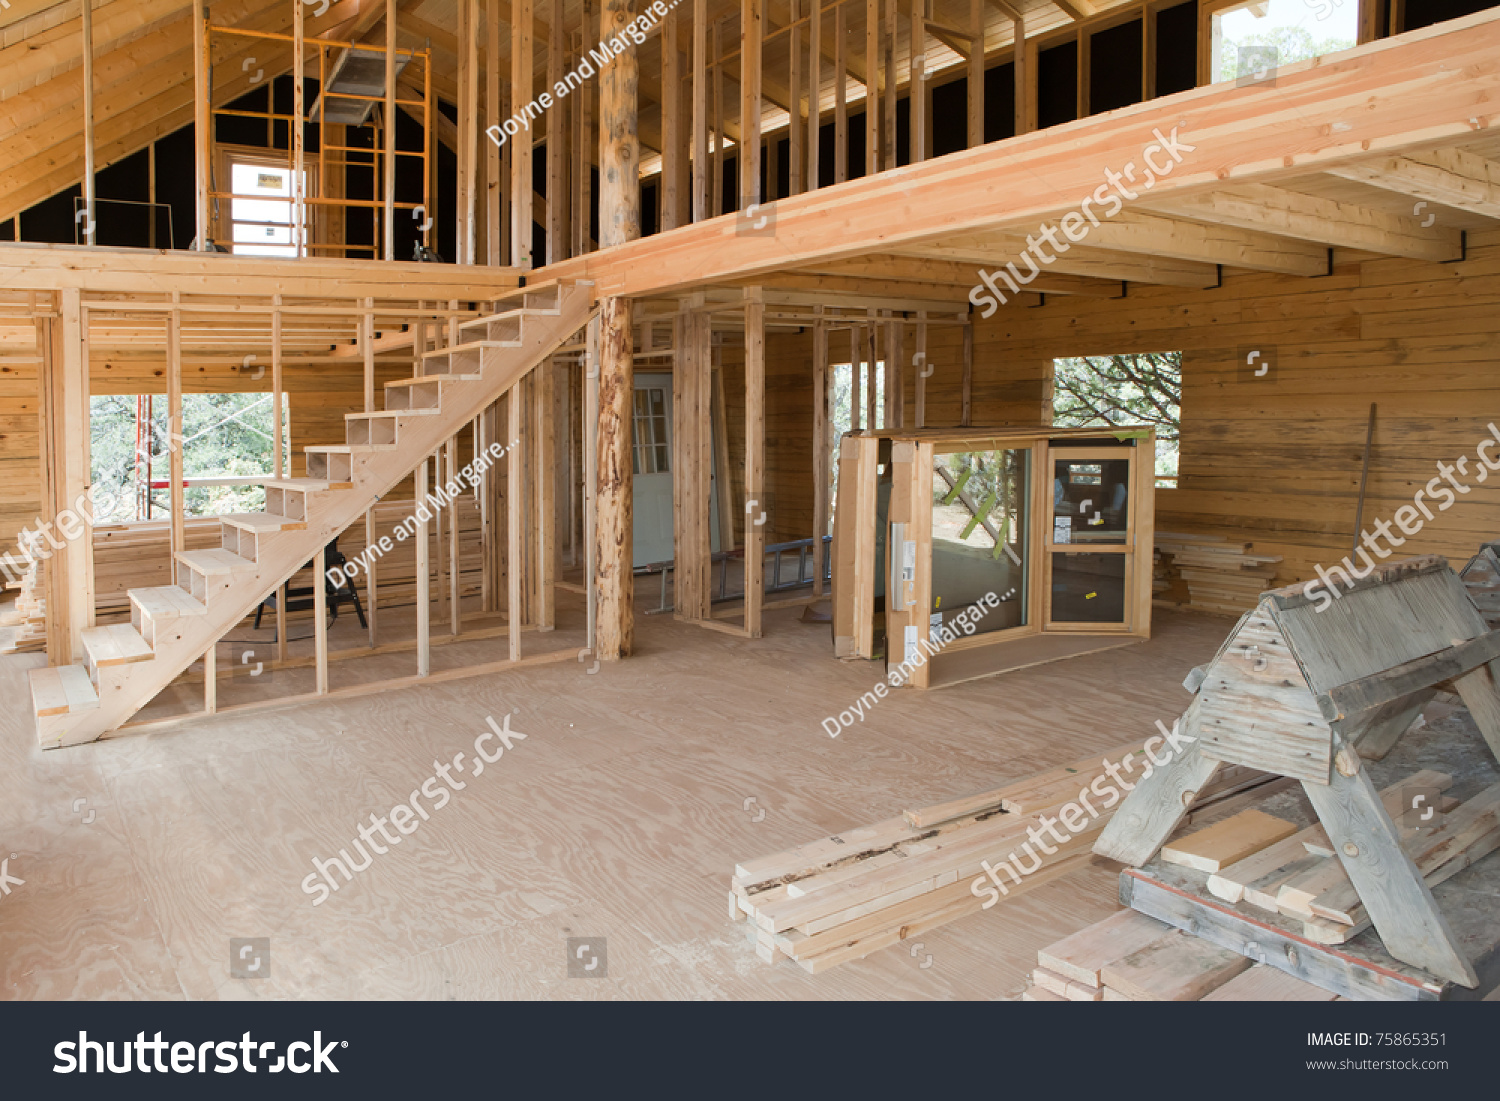 Interior view construction new residential building stock - Building a new home ...